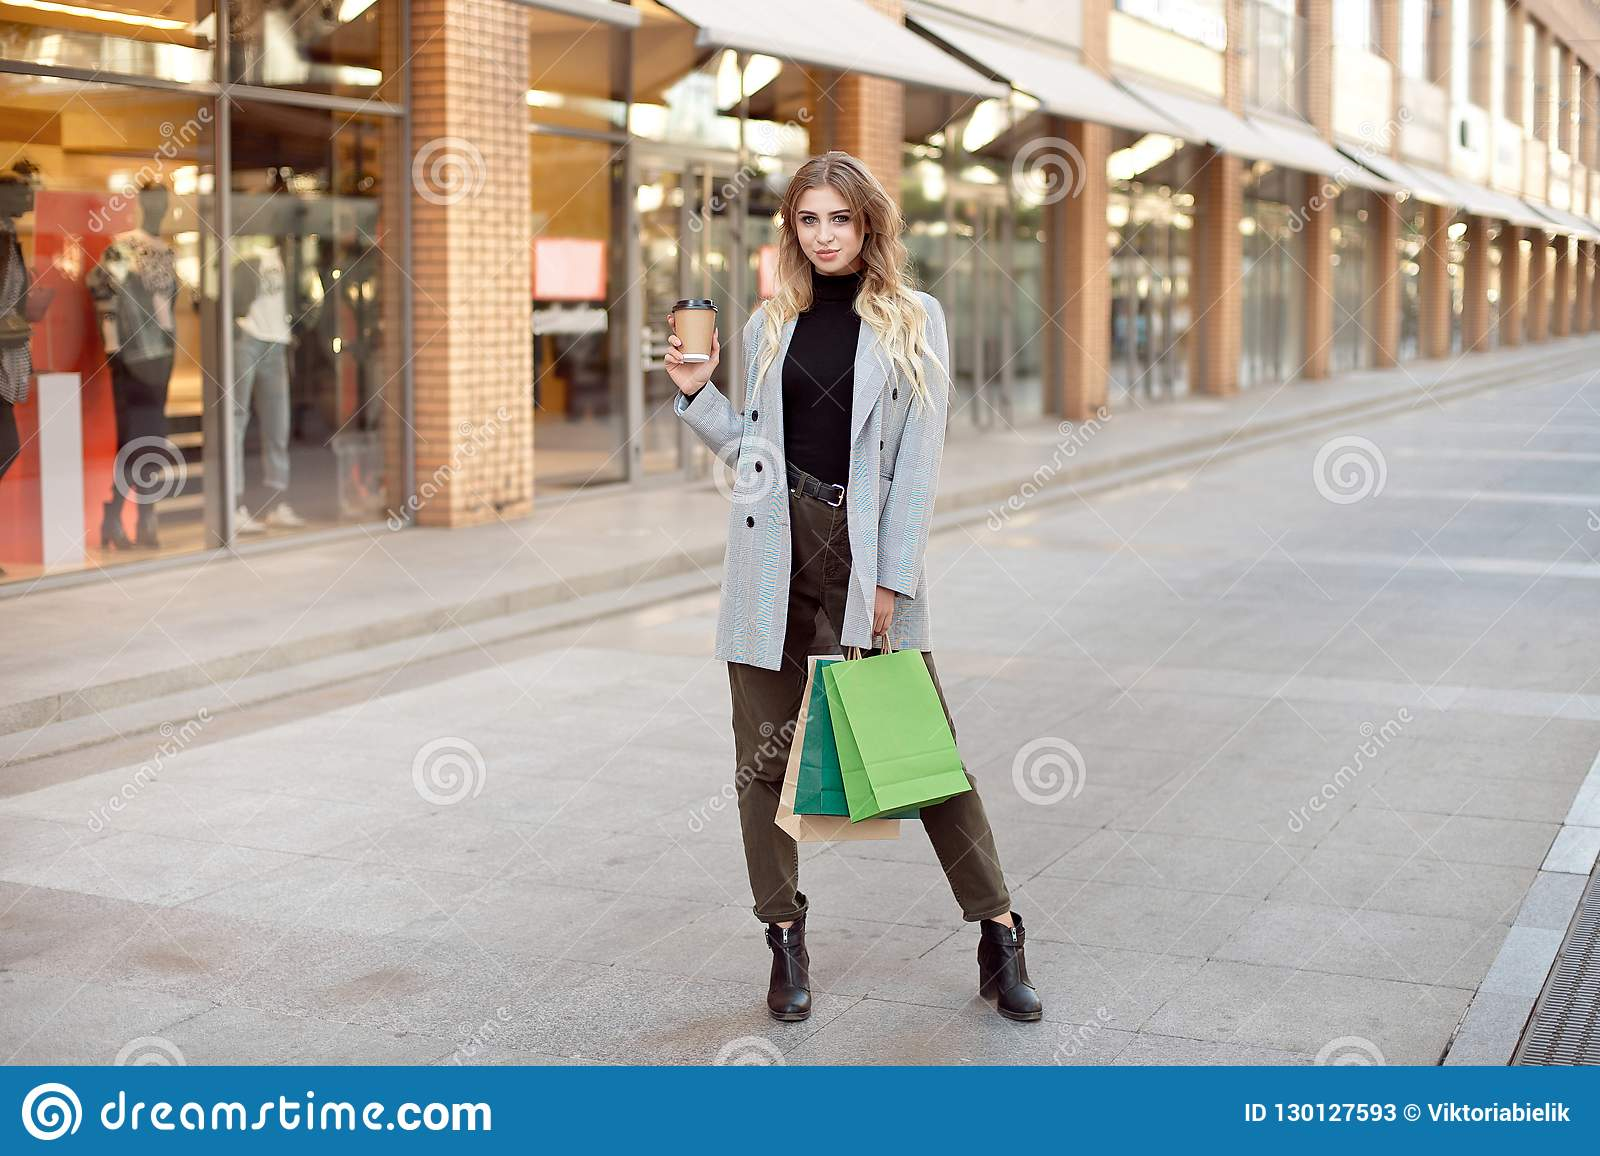 Cute young fashion woman with shopping bags standing near storefront shop windows on the street outdoors